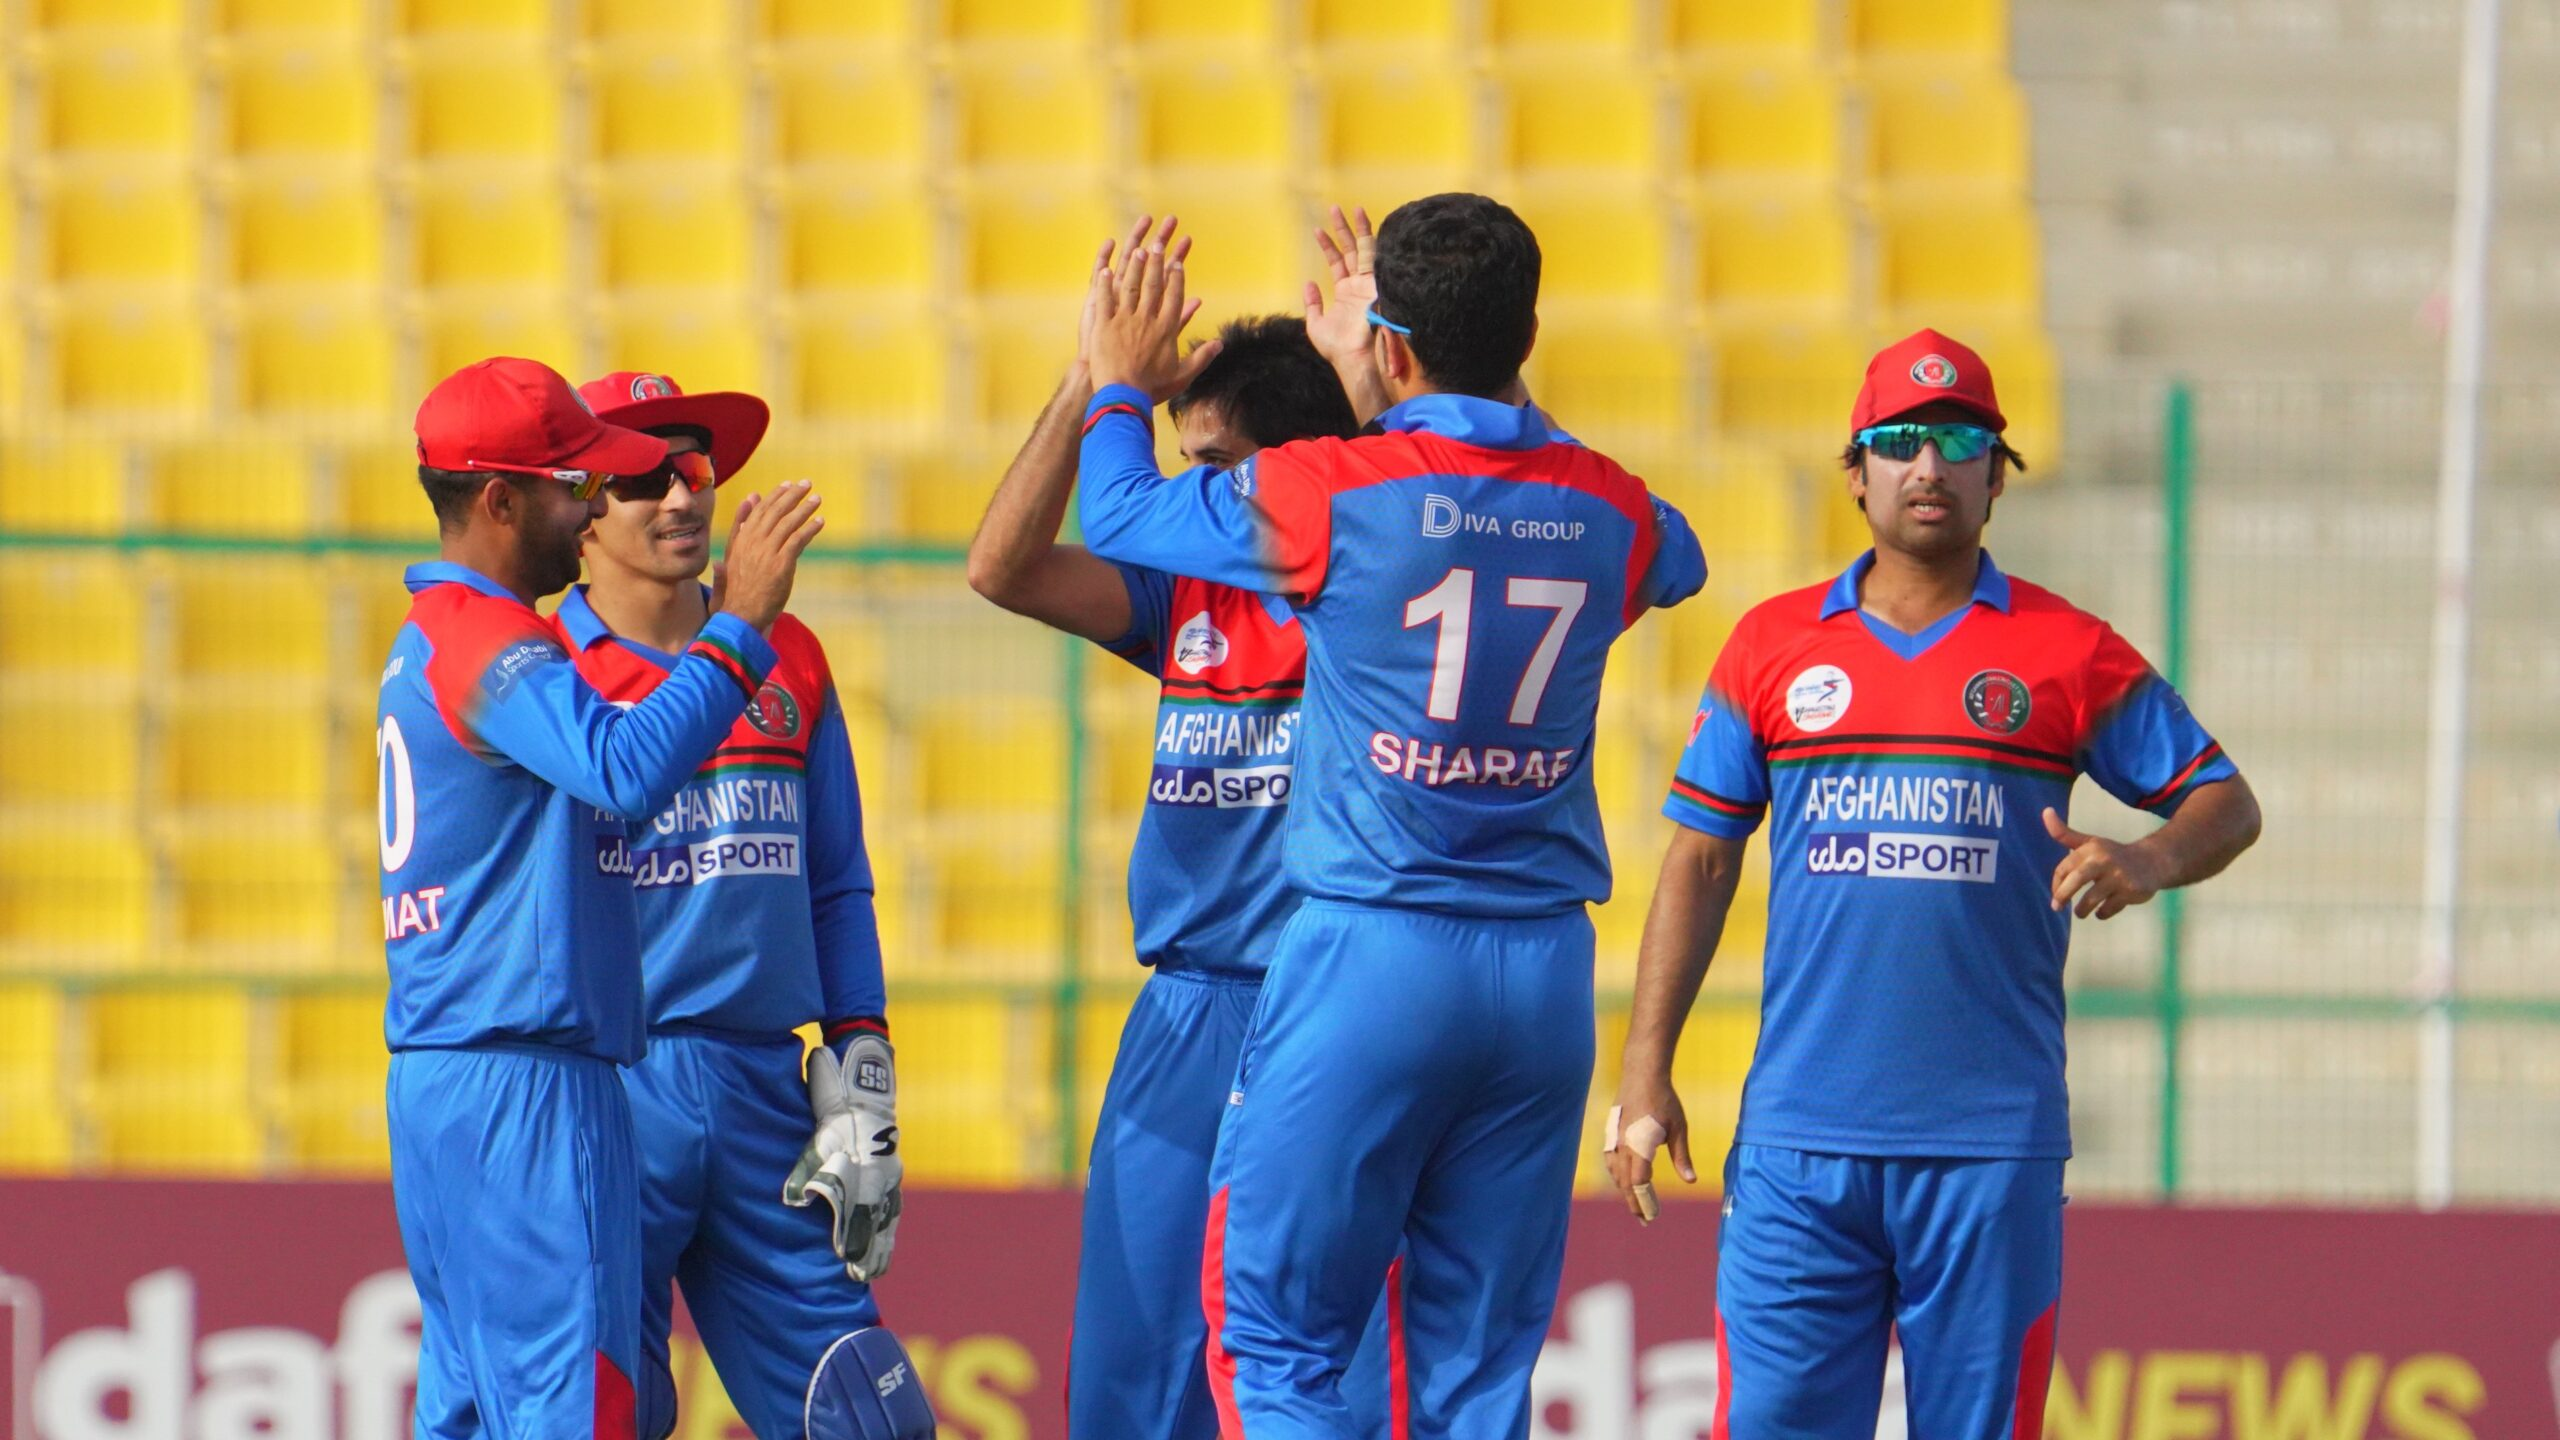 ICC T20 World Cup 2021: Afghanistan Squad And Schedule, Groups, Time And Venue